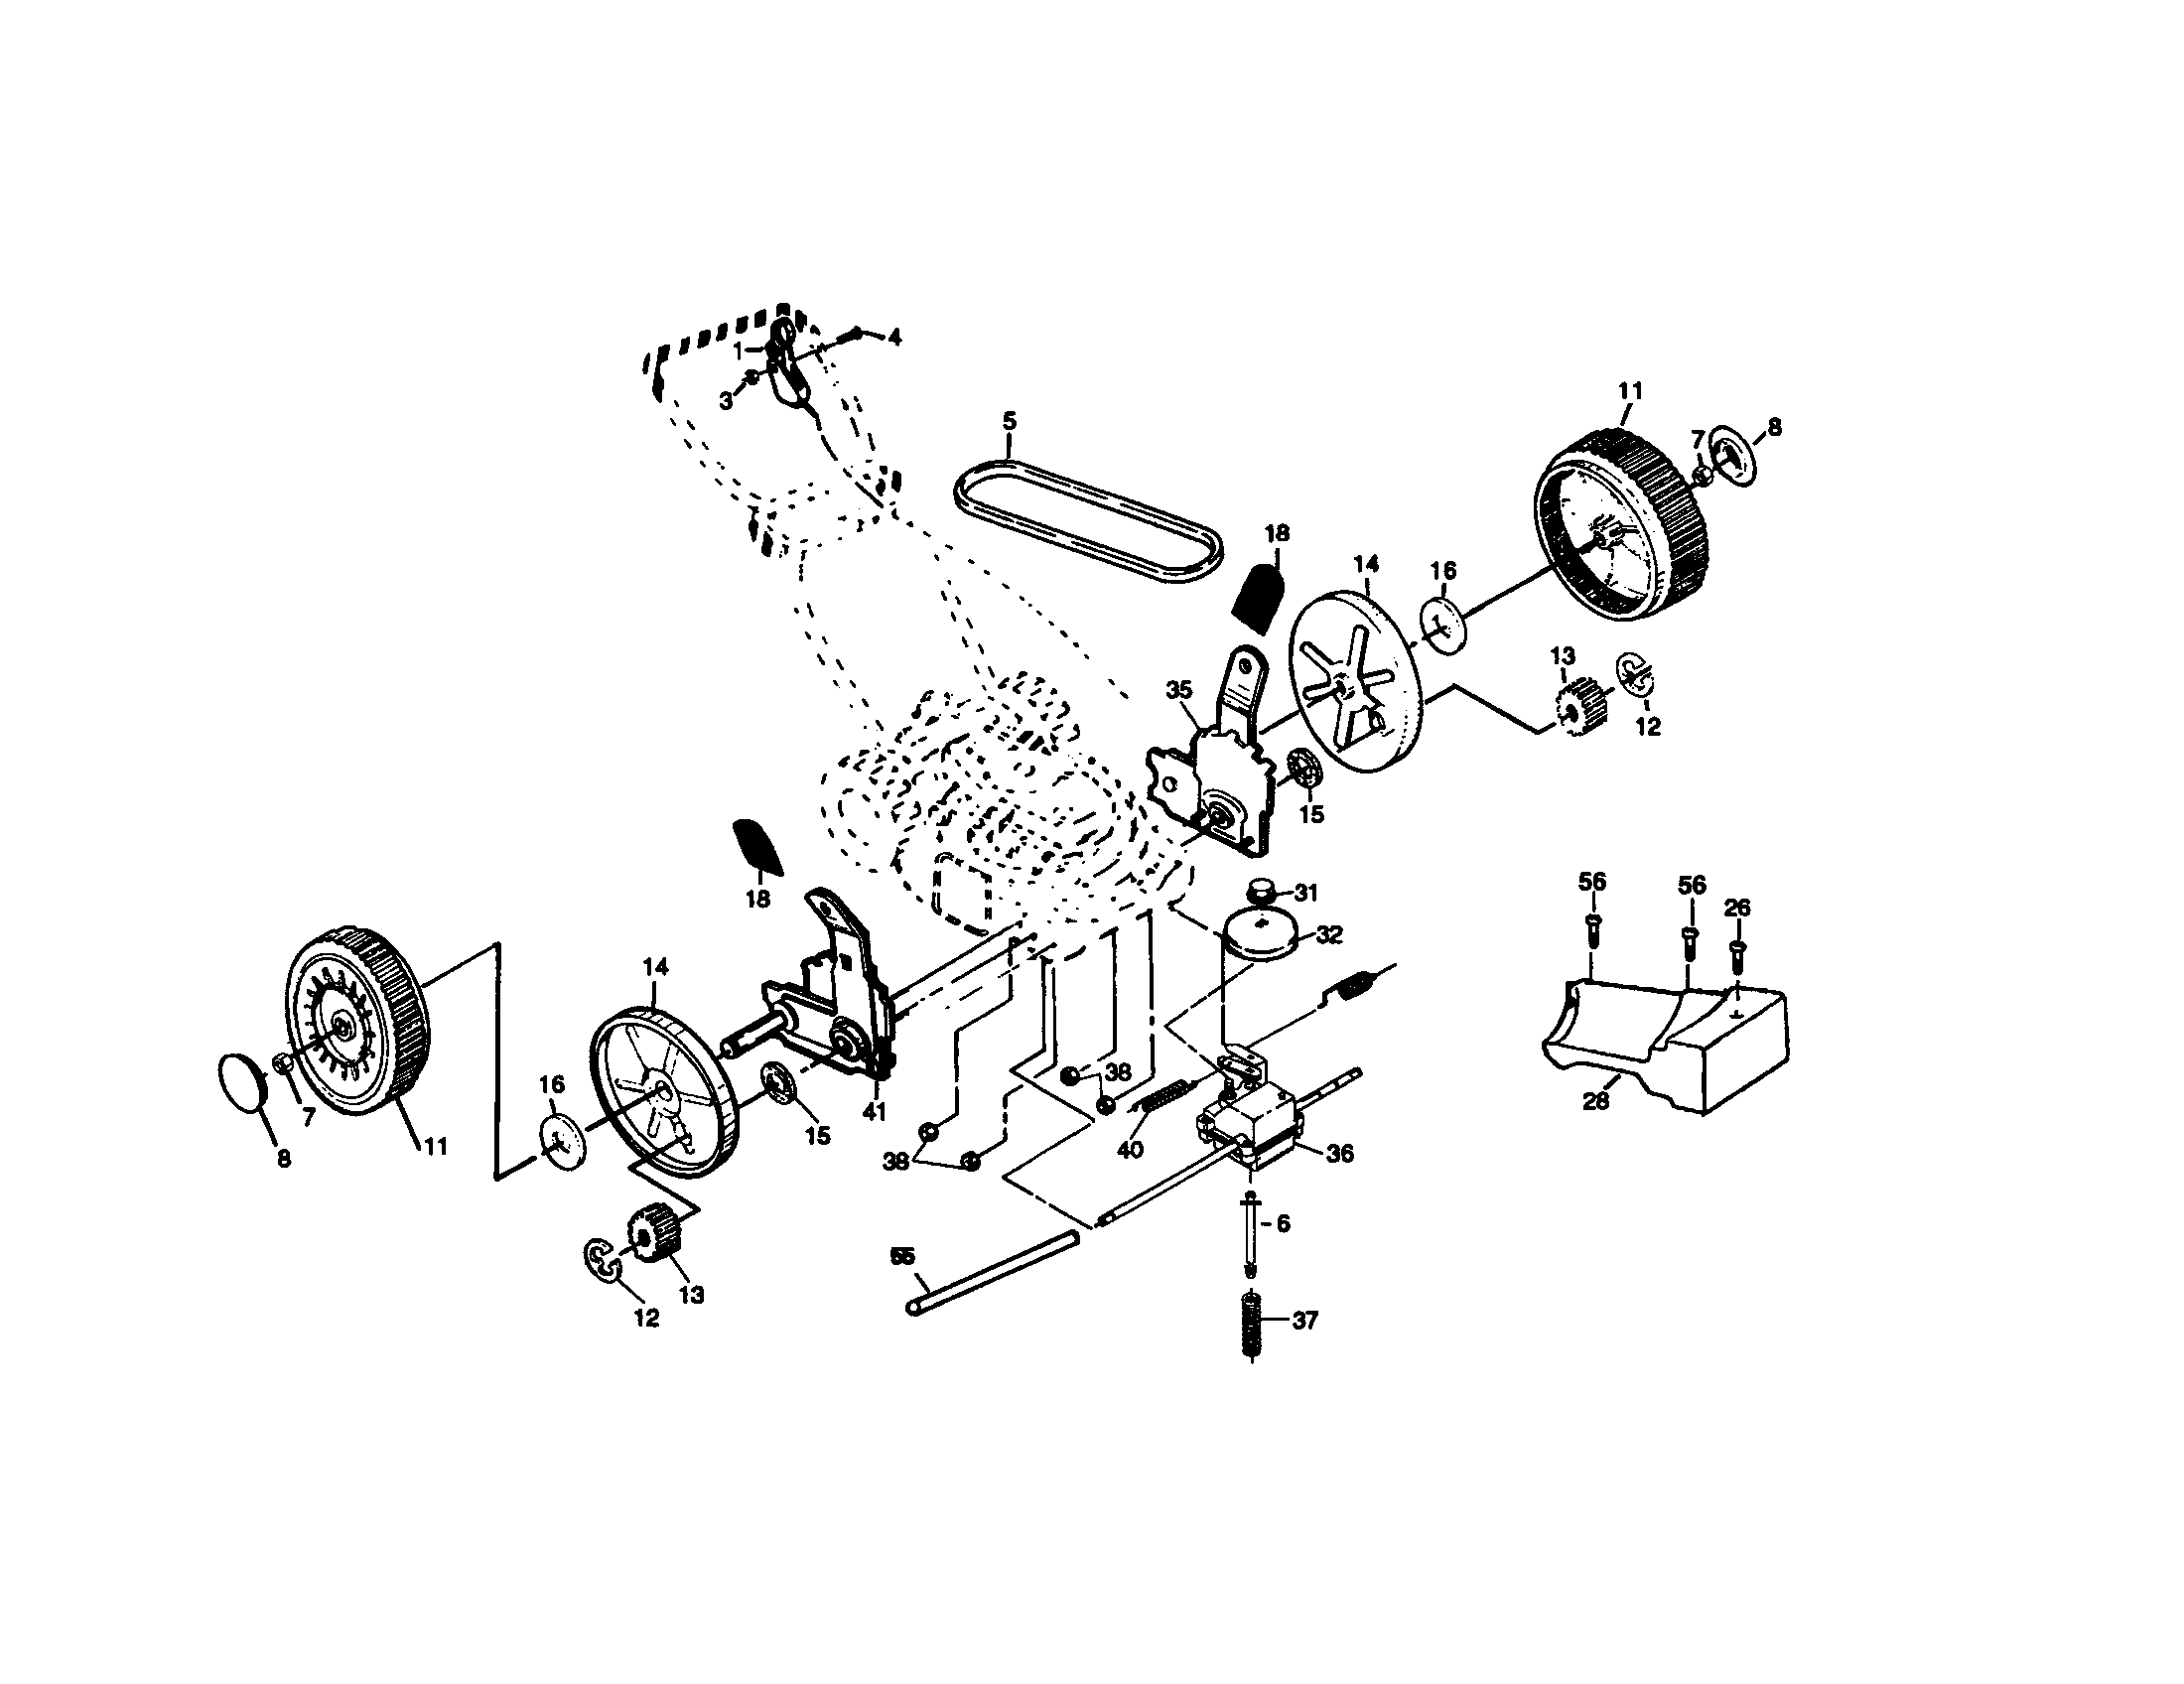 WHEEL AND TIRE ASSEMBLY Diagram & Parts List for Model